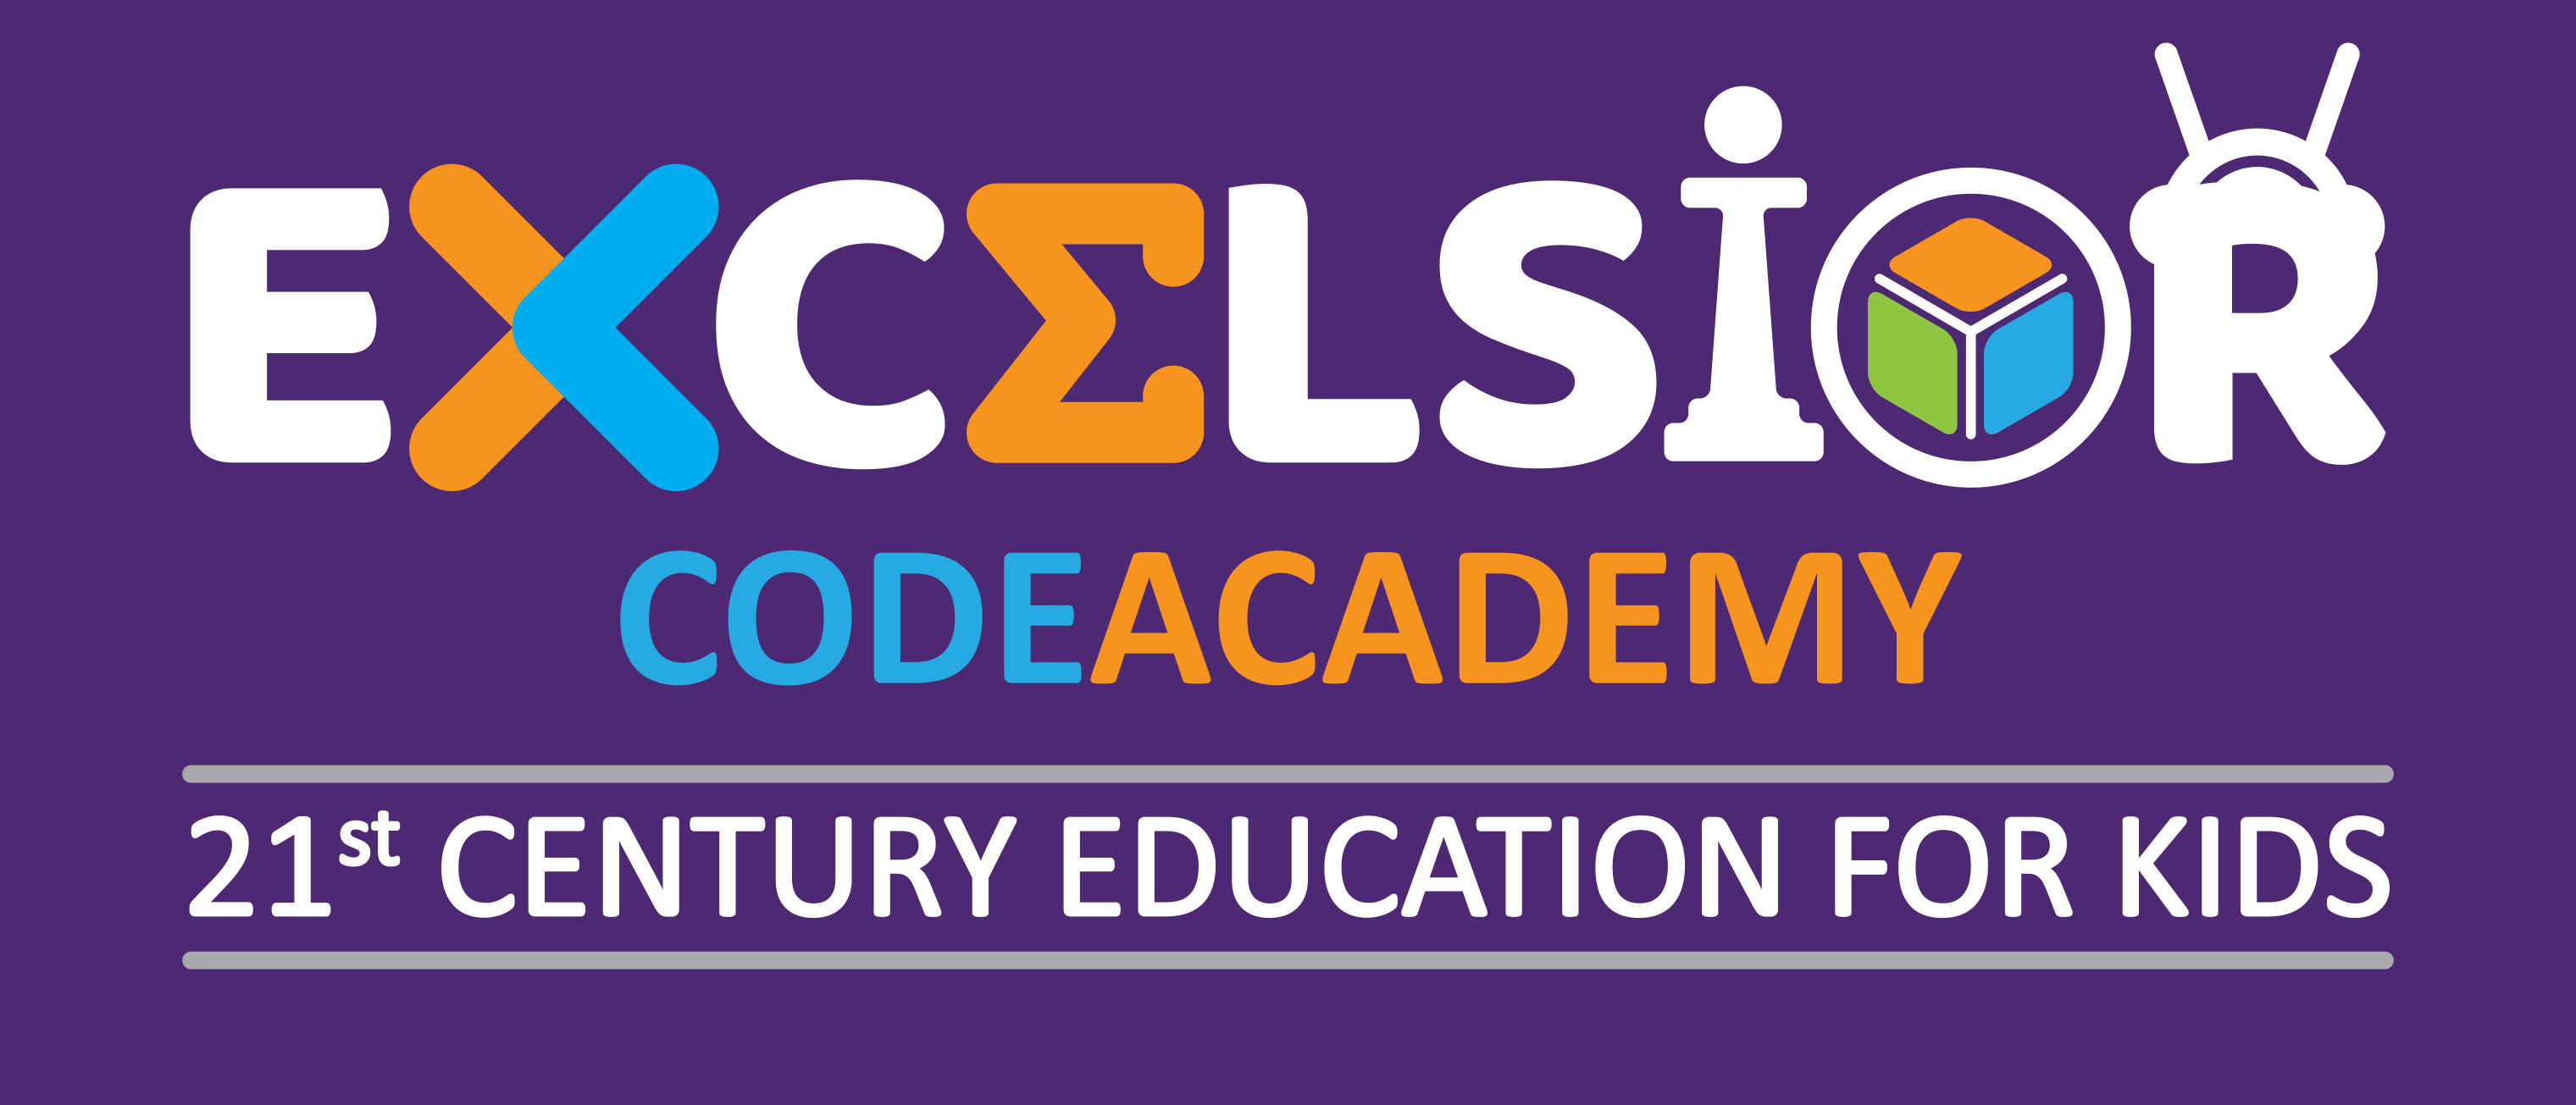 Excelsior CodeAcademy